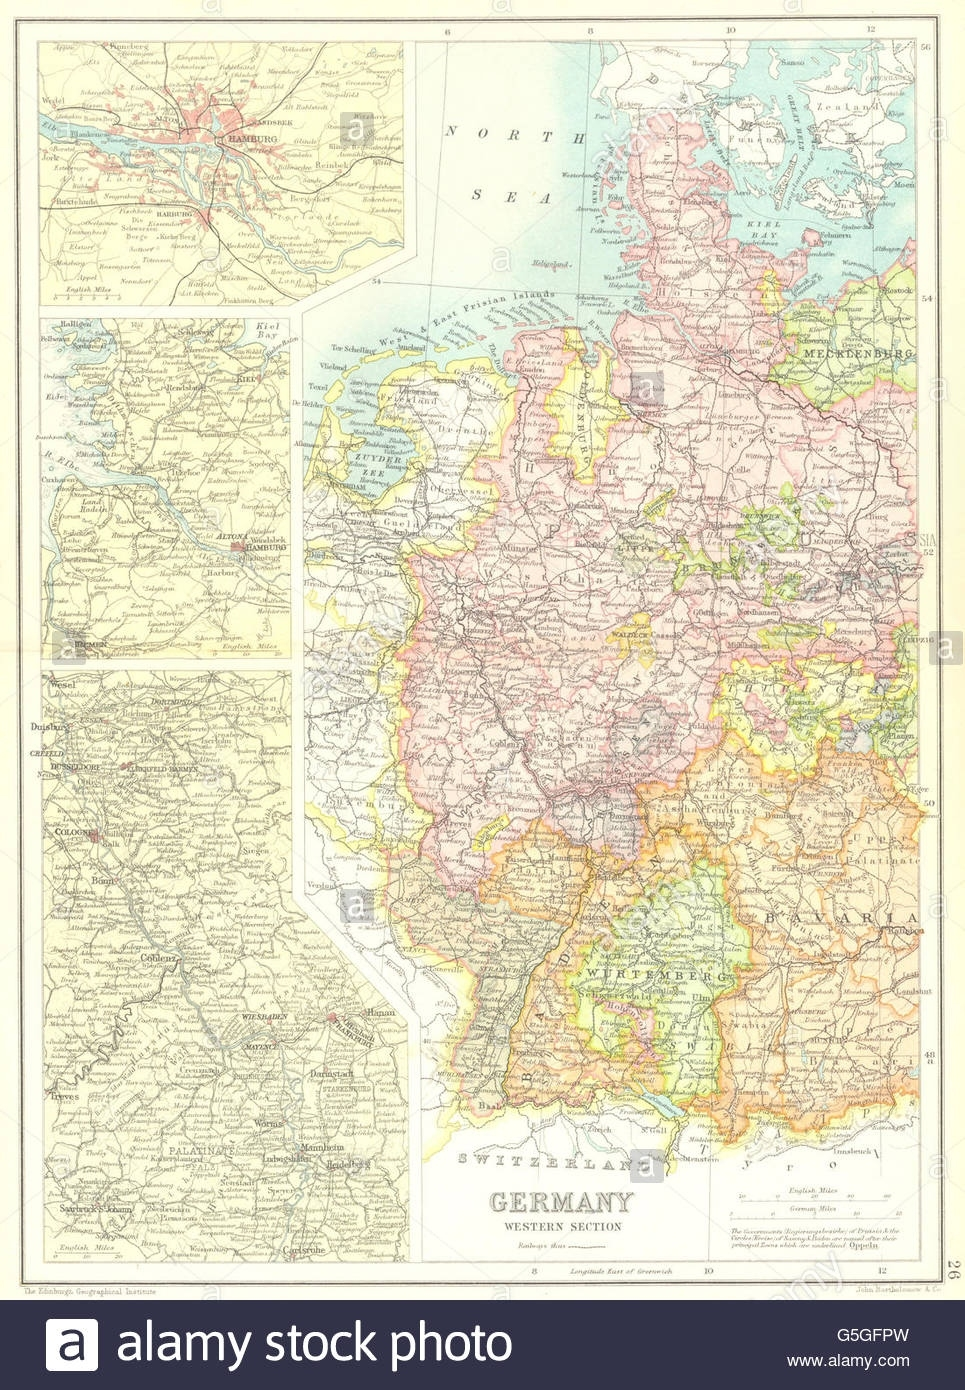 Western Germany: Inset Hamburg; Rhine Valley. Cassells, 1909 Antique intended for Rhine Valley Germany Map